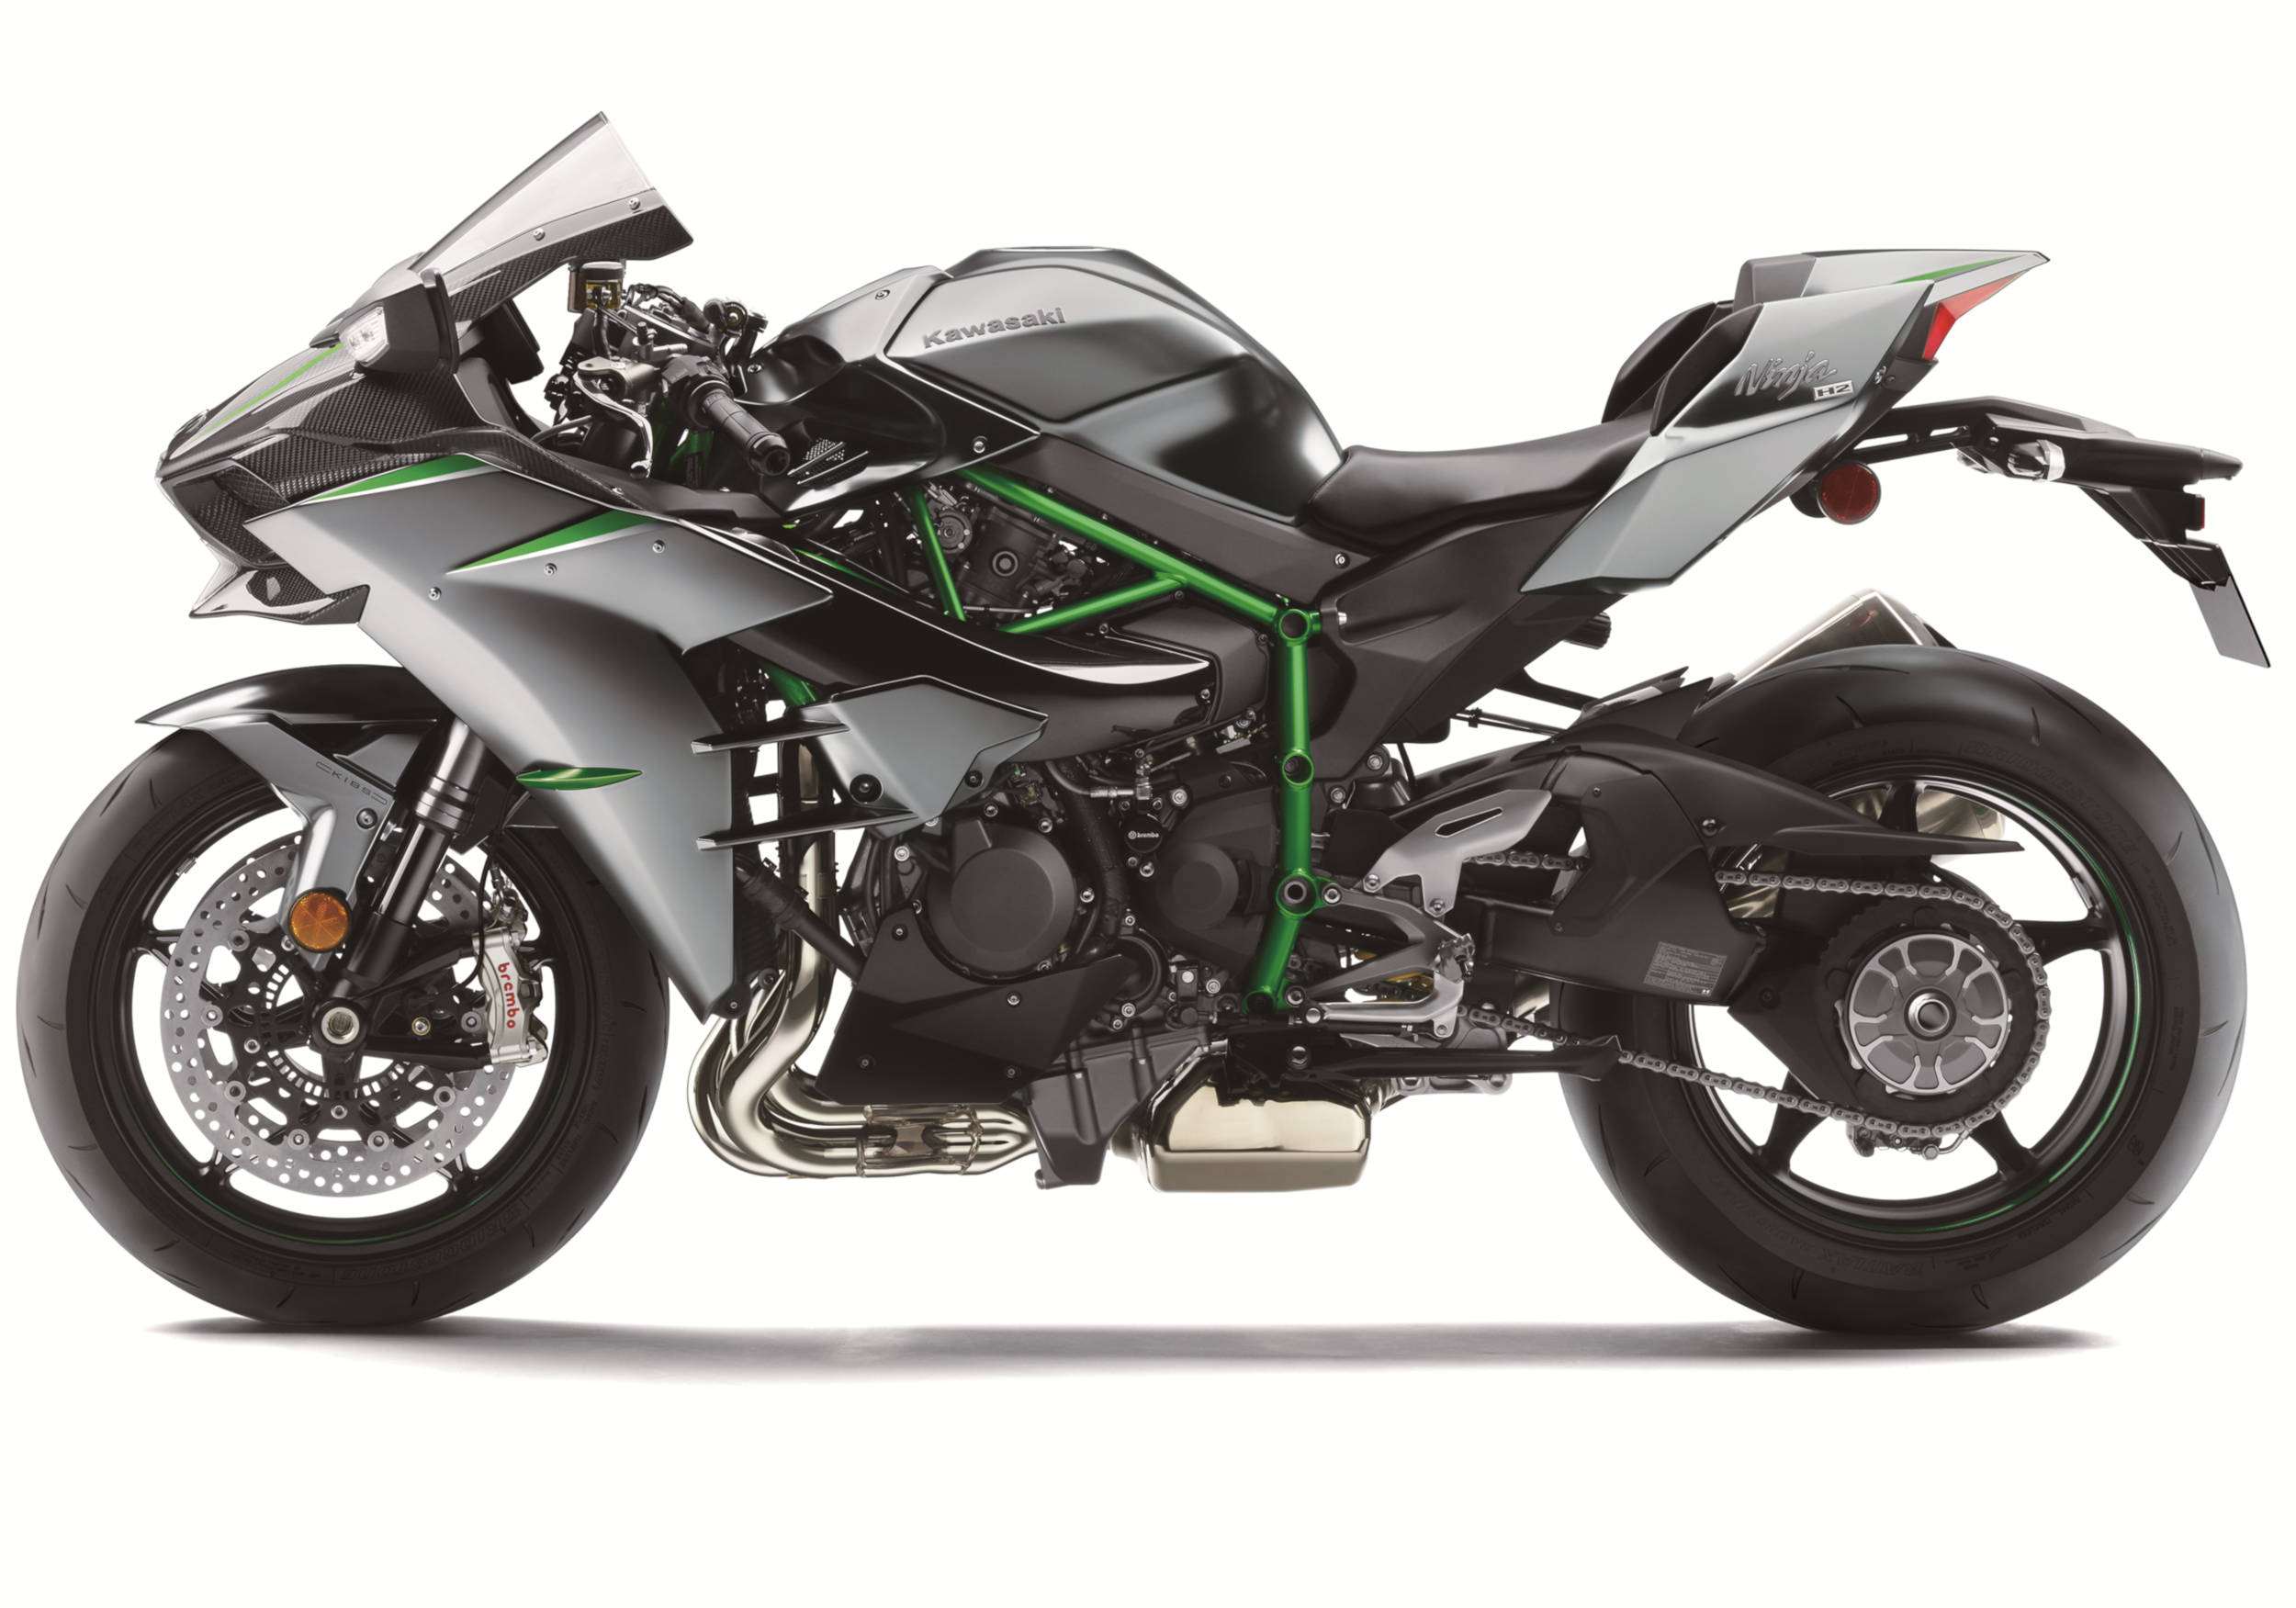 Kawasaki Announces Changes To 2019 Ninja H2 Carbon And H2R